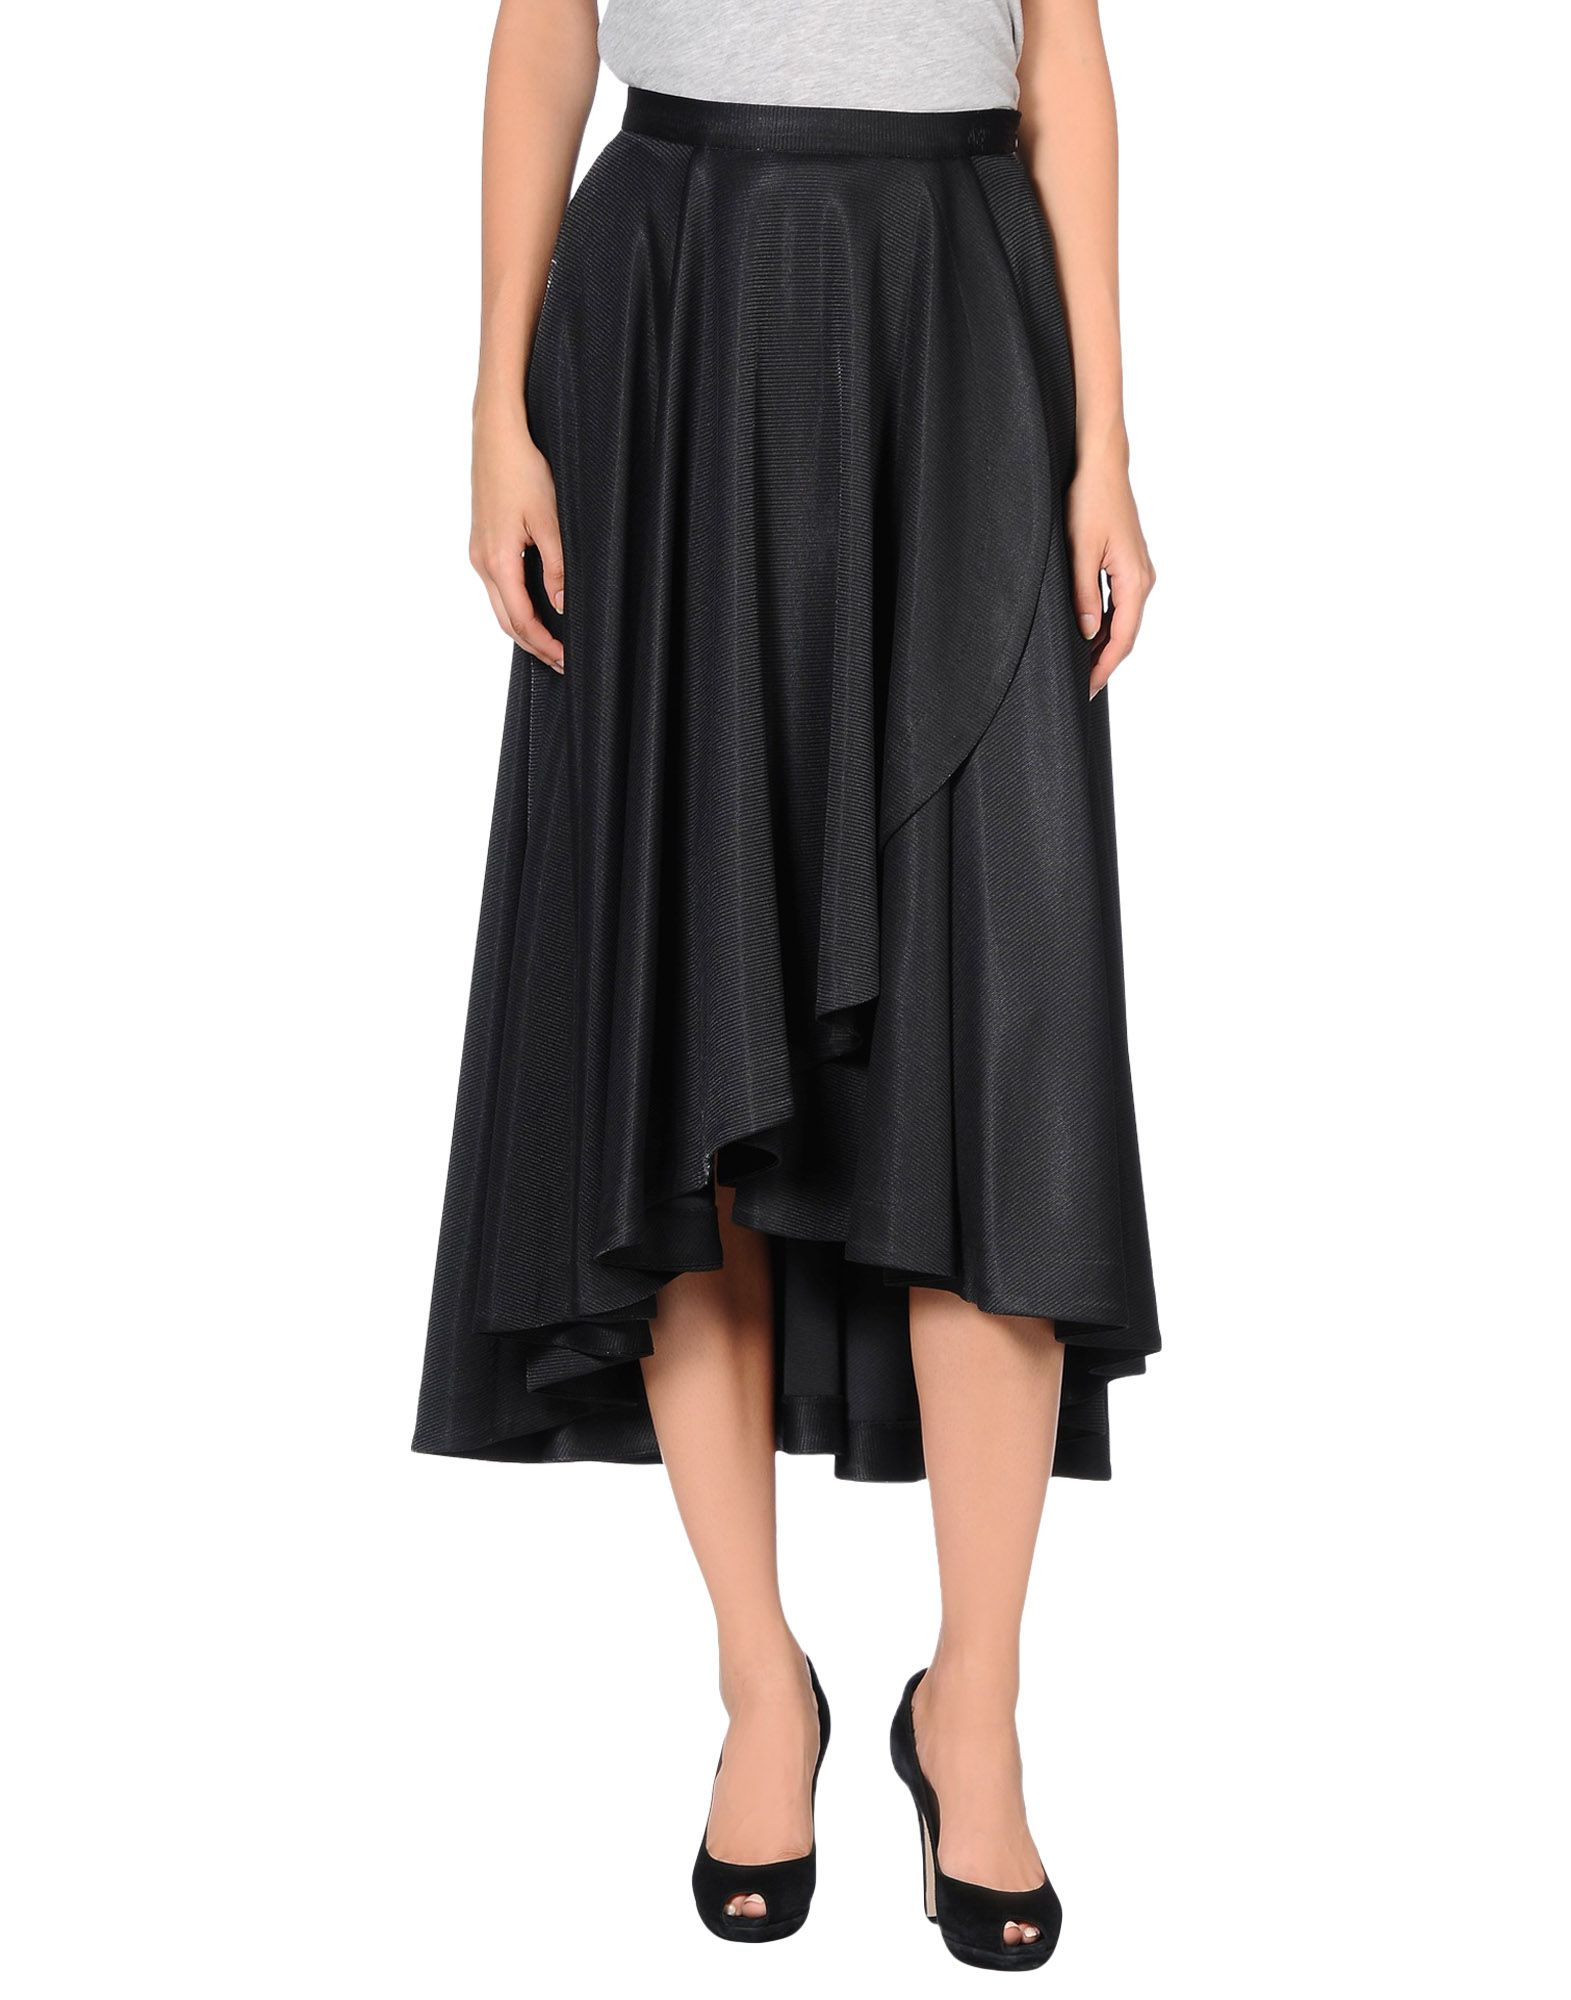 ANREALAGE Knee Length Skirt in Black